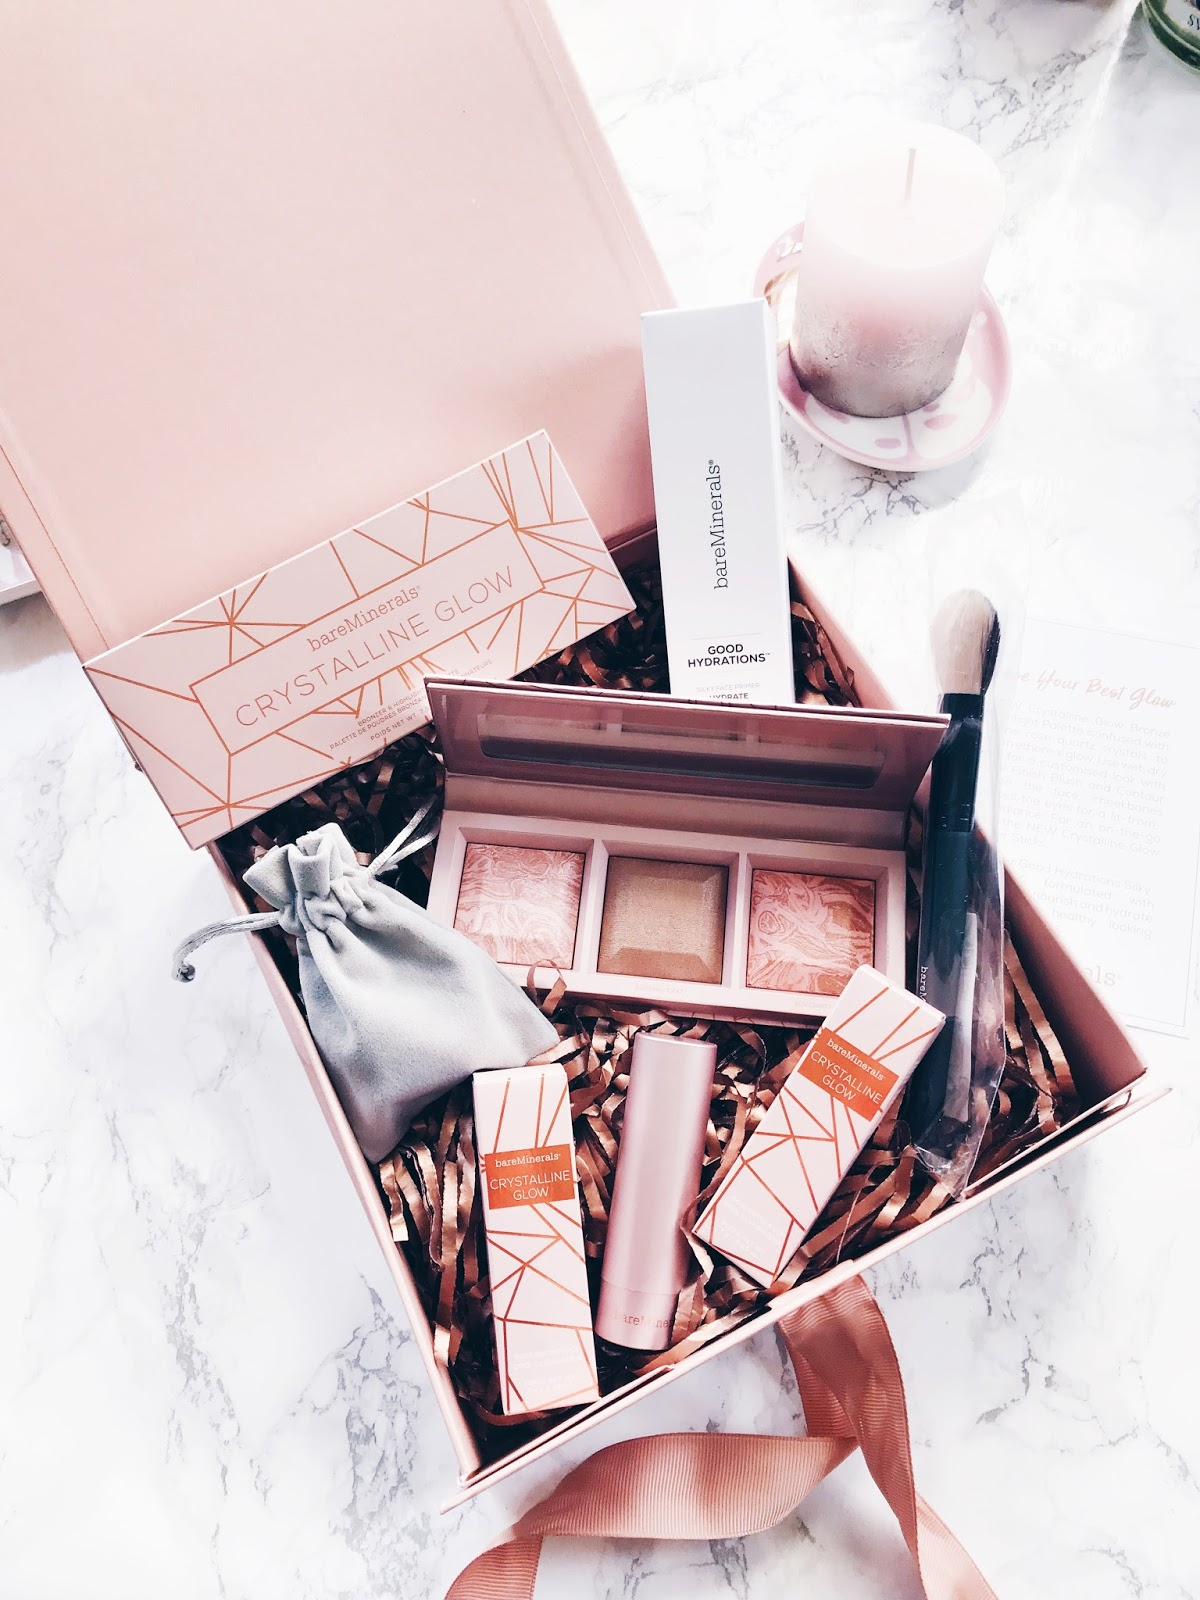 The NEW Crystalline Highlight collection from bareMinerals